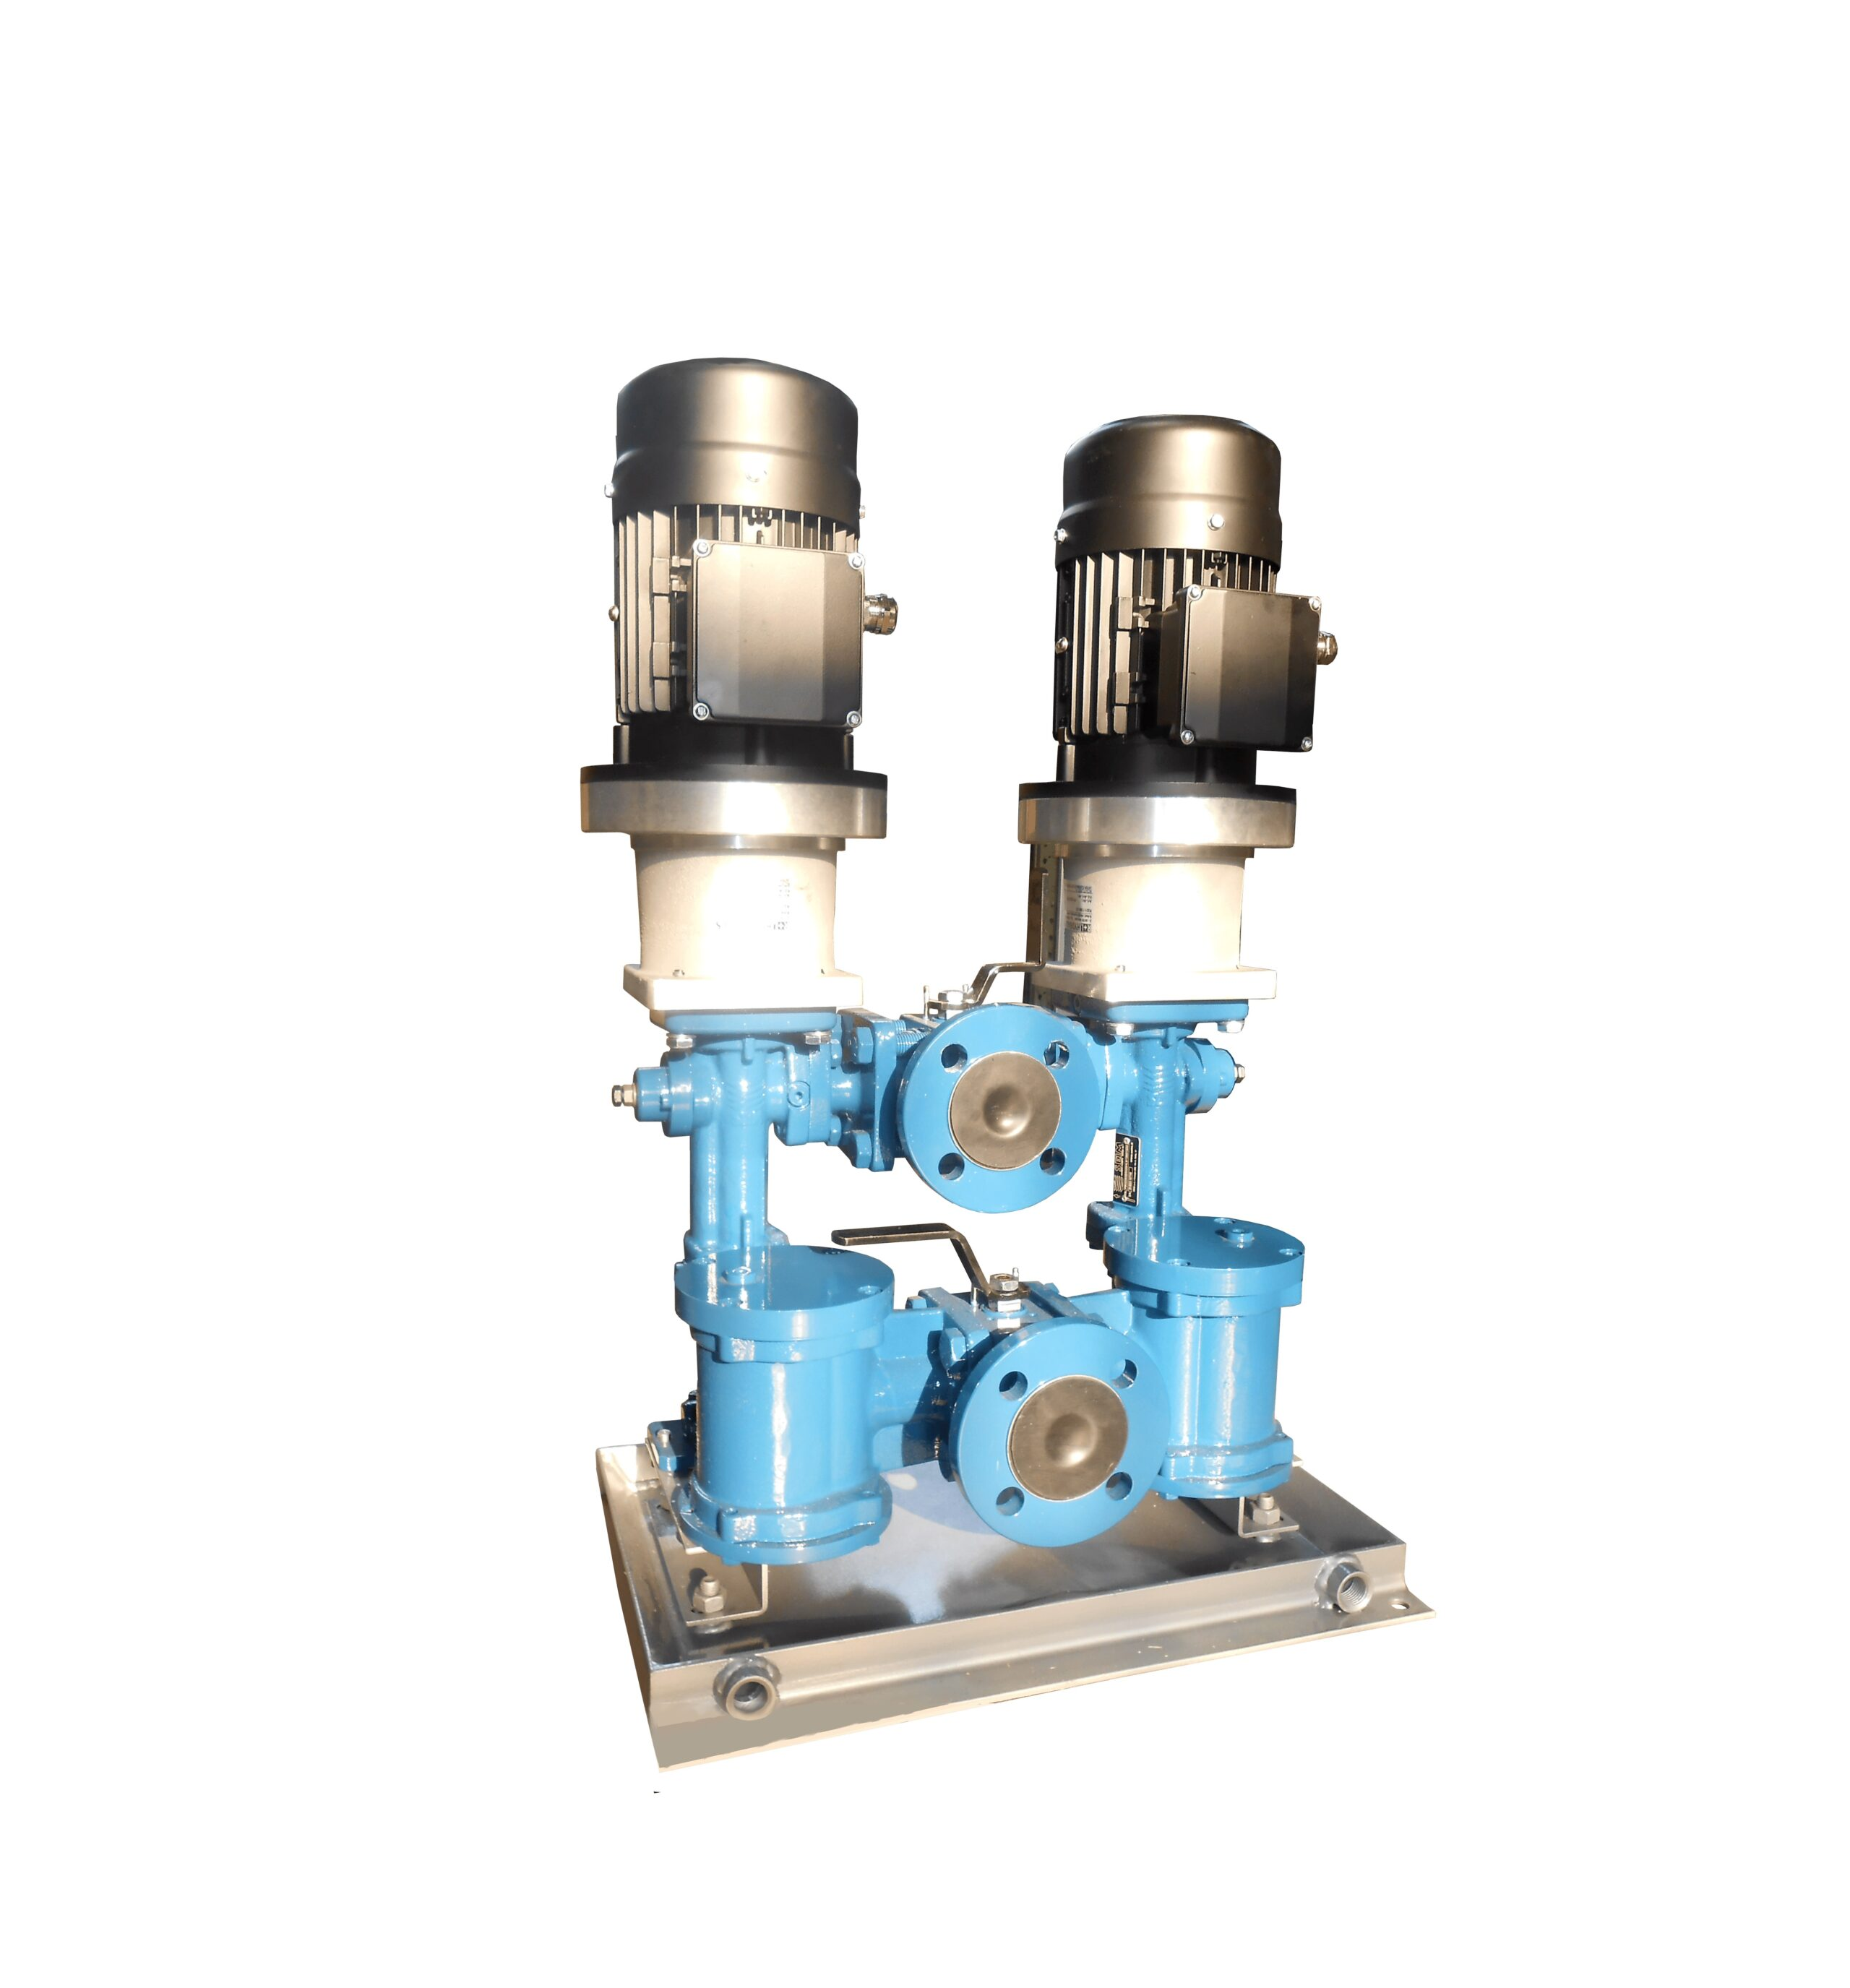 Pumps - Marine Power International Fzc | (MPI)